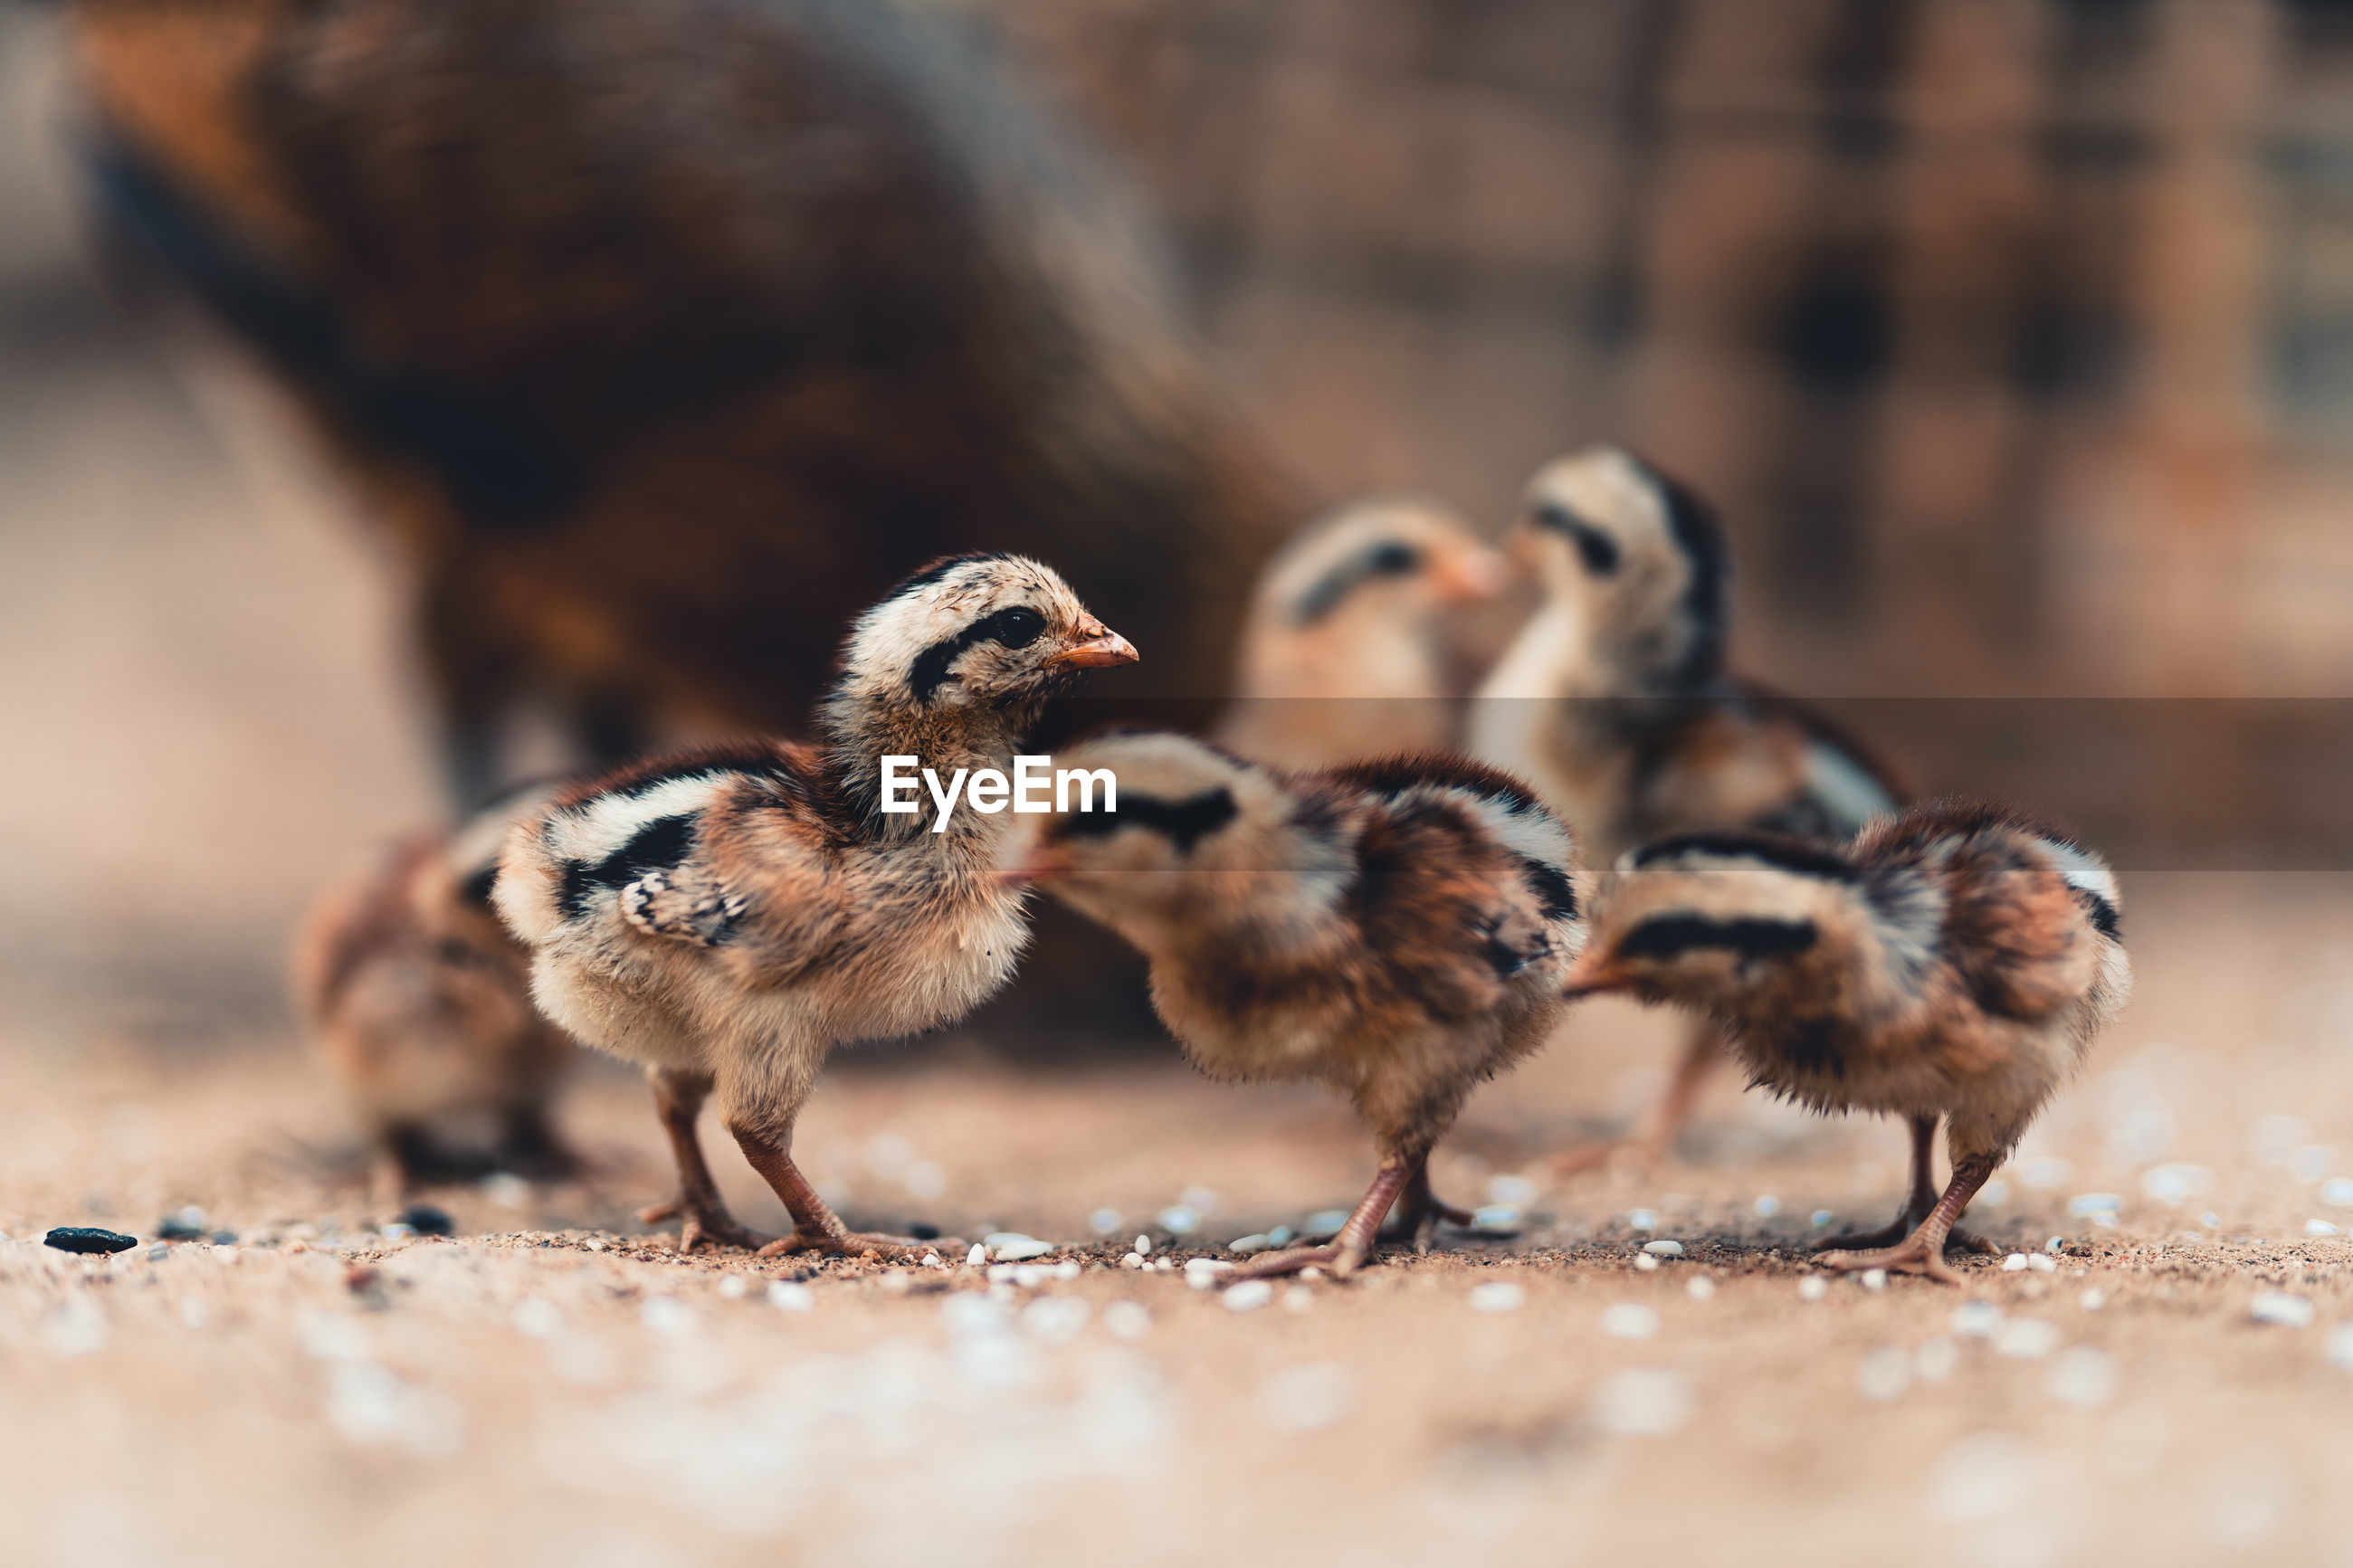 CLOSE-UP OF DUCKS ON A LAND